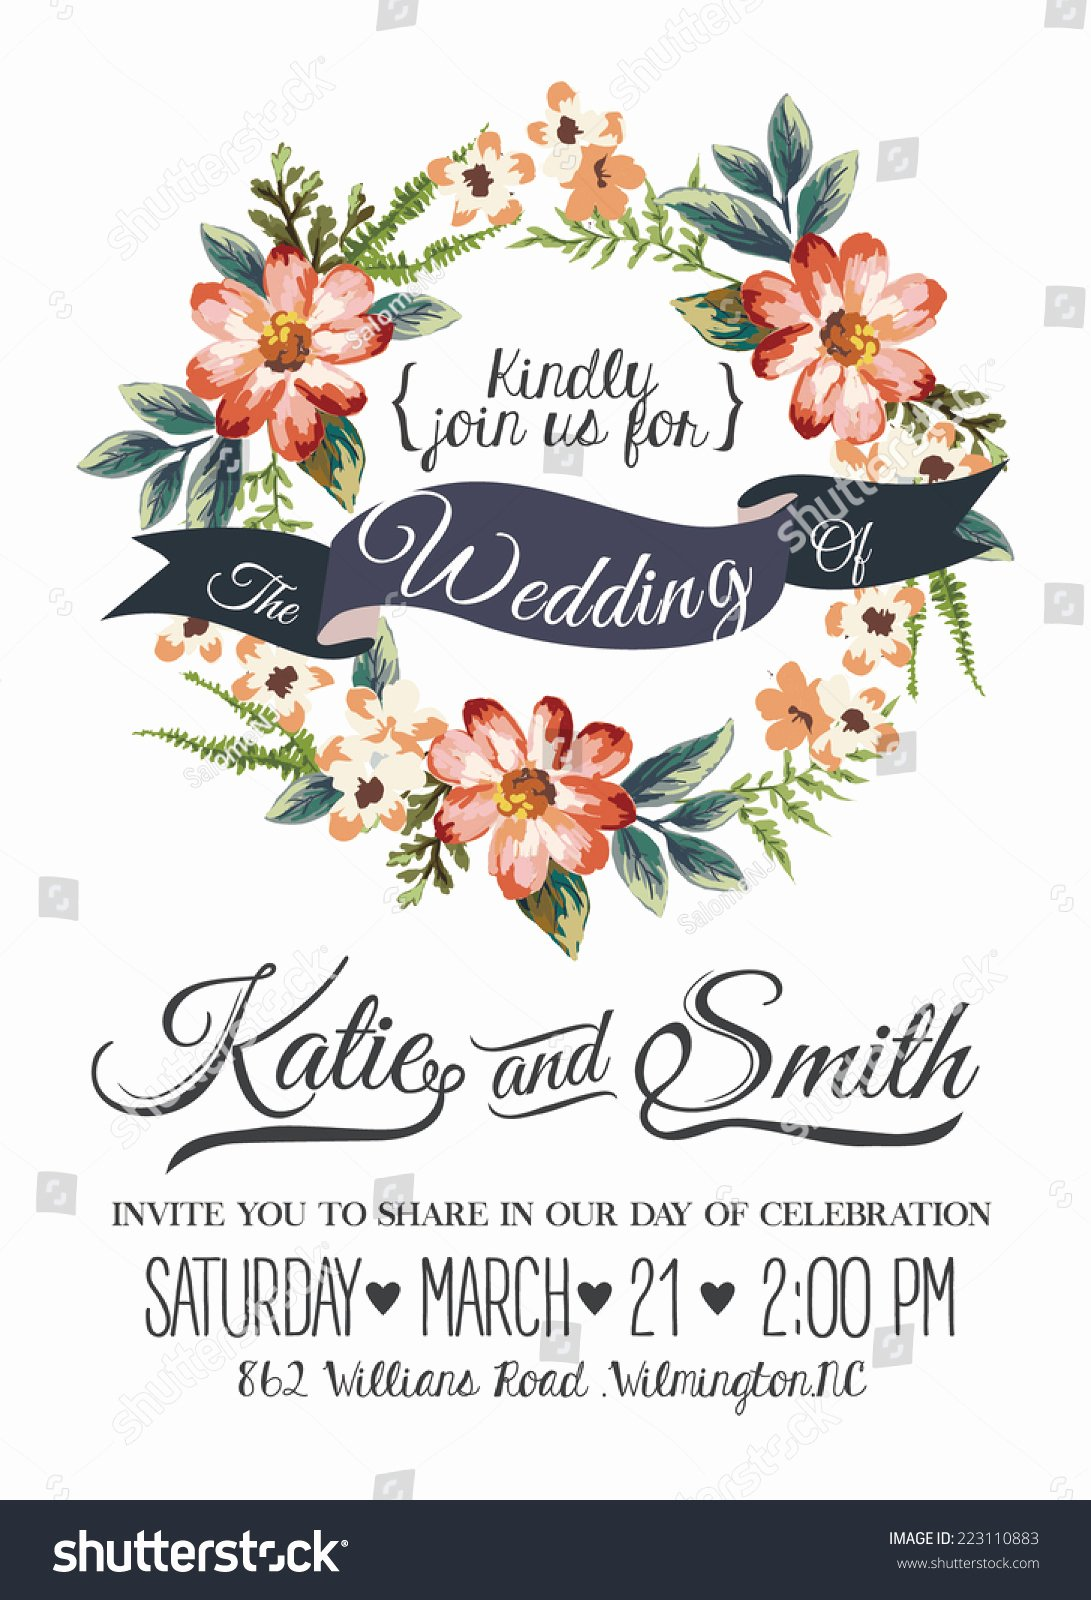 Floral Invitation Template Best Of Wedding Invitation Card Romantic Flower Templates Stock